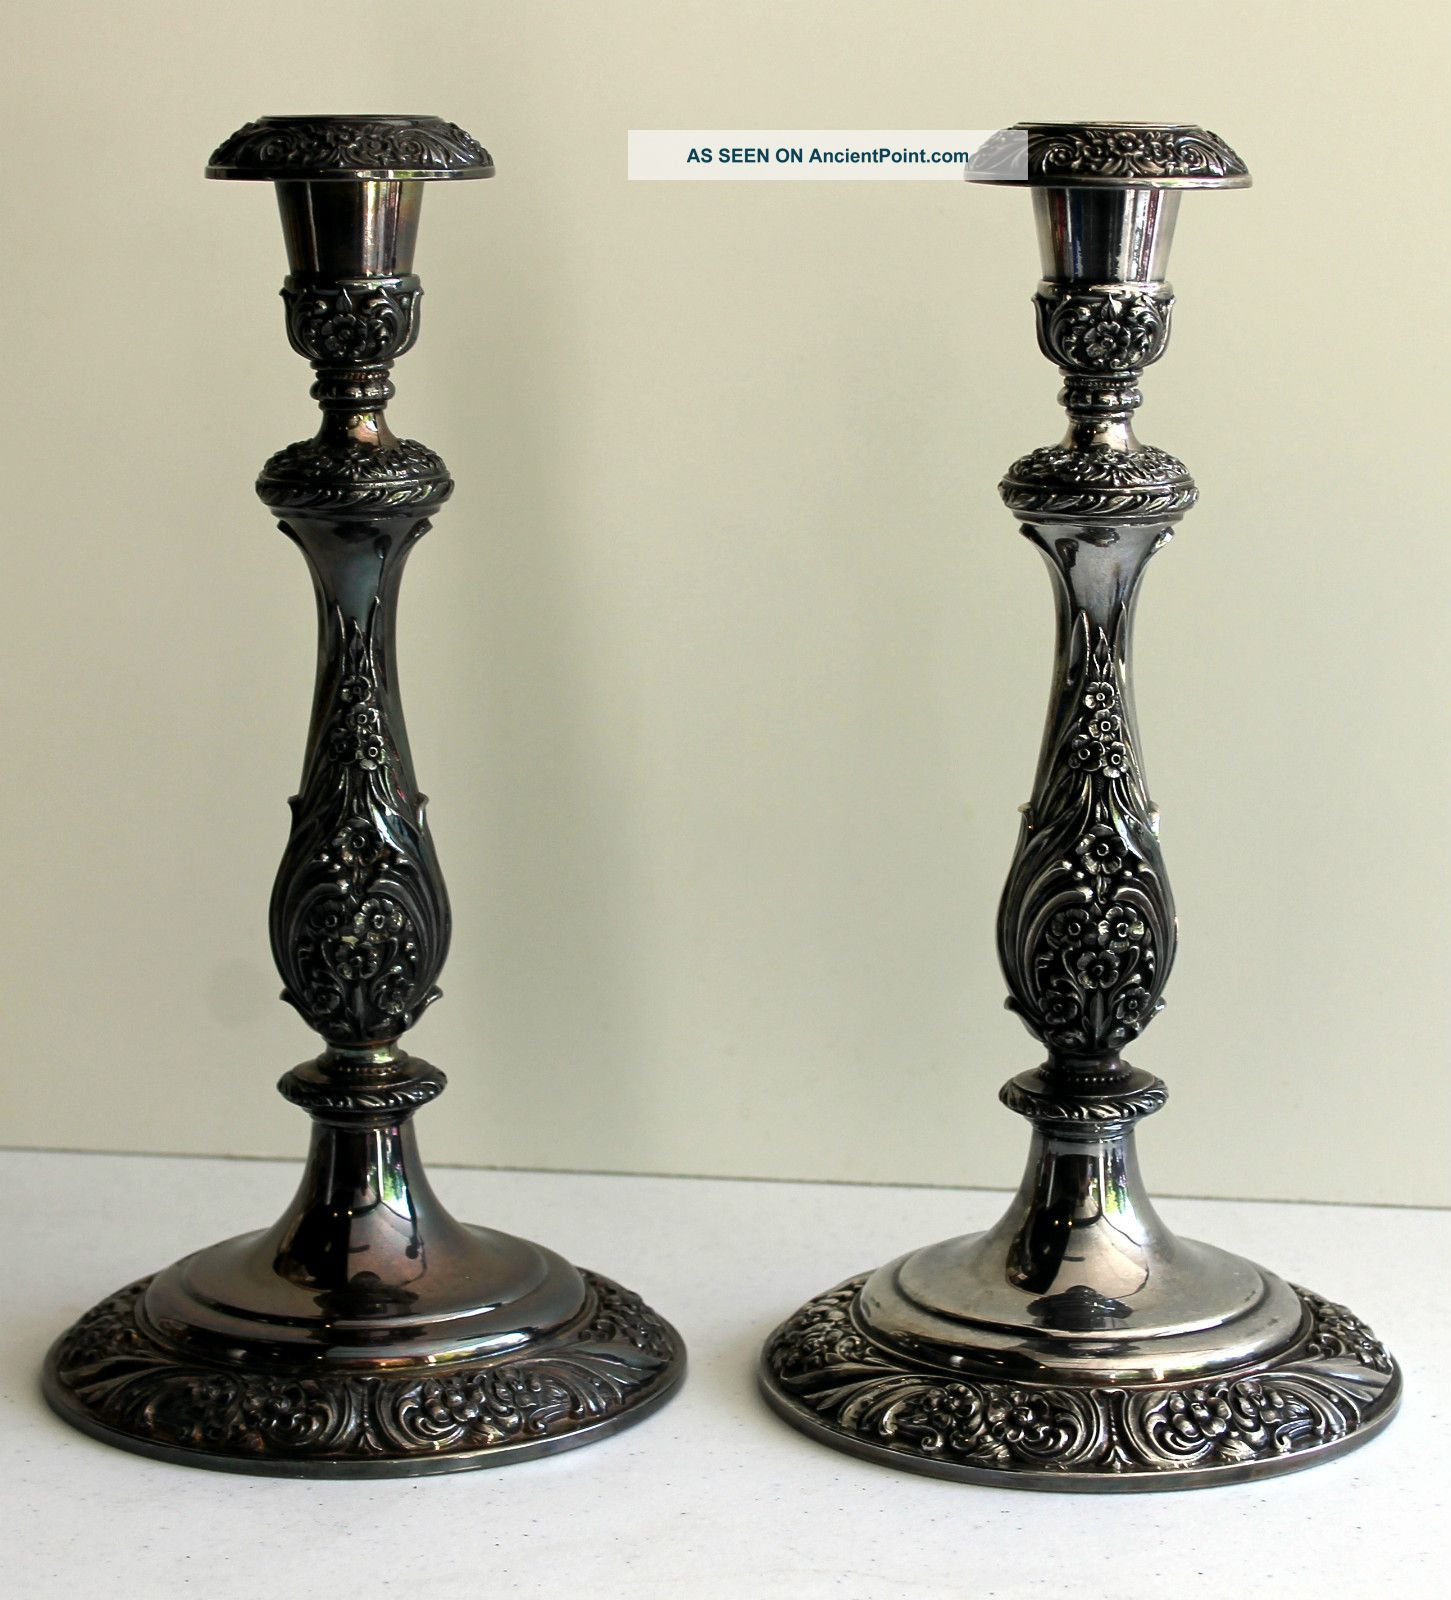 Vintage Pair 1847 Rogers Bros - Heritage Silver Plated Candle Holder Candelabra Photos and Information in AncientPoint & Vintage Pair 1847 Rogers Bros - Heritage Silver Plated Candle ...